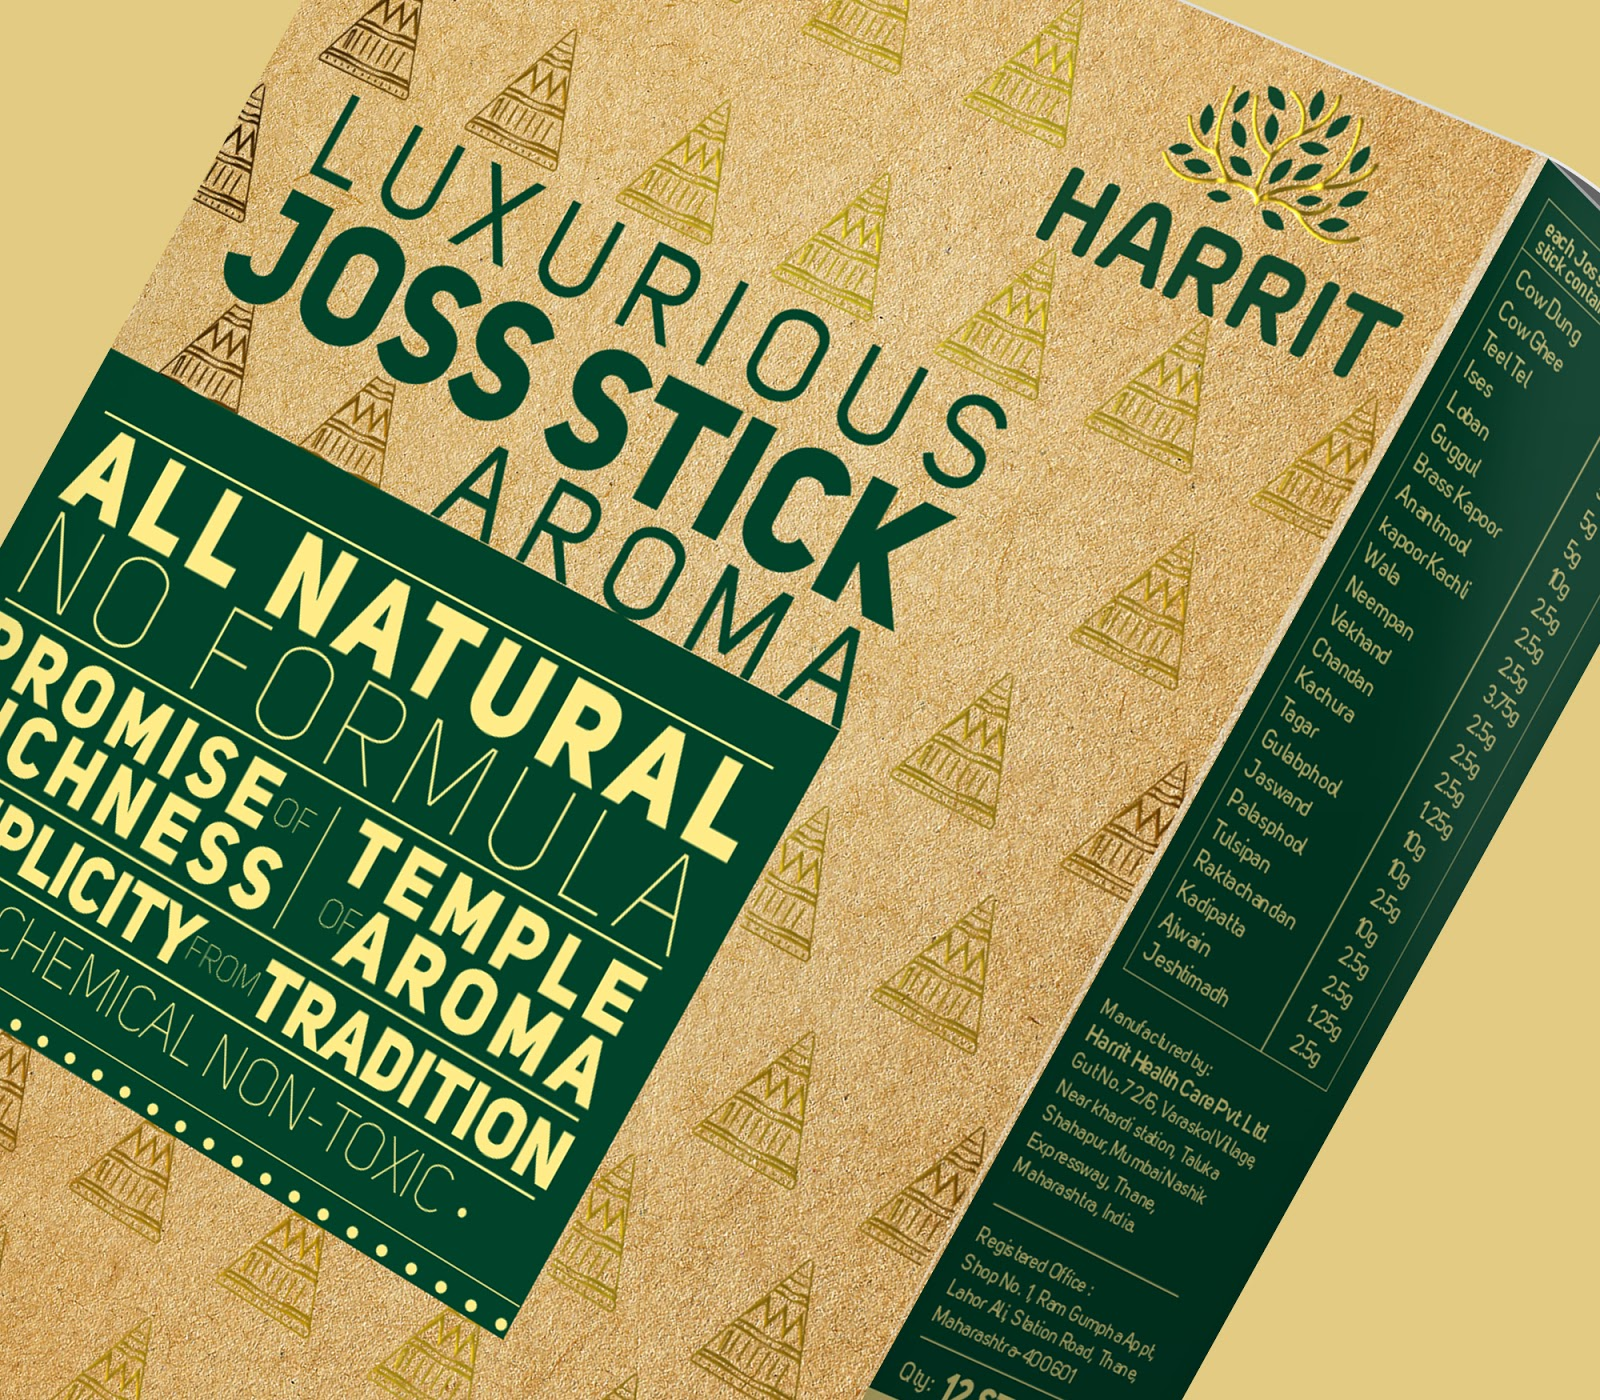 Luxurious Joss Sticks | Penang Web and Graphic Design Agency